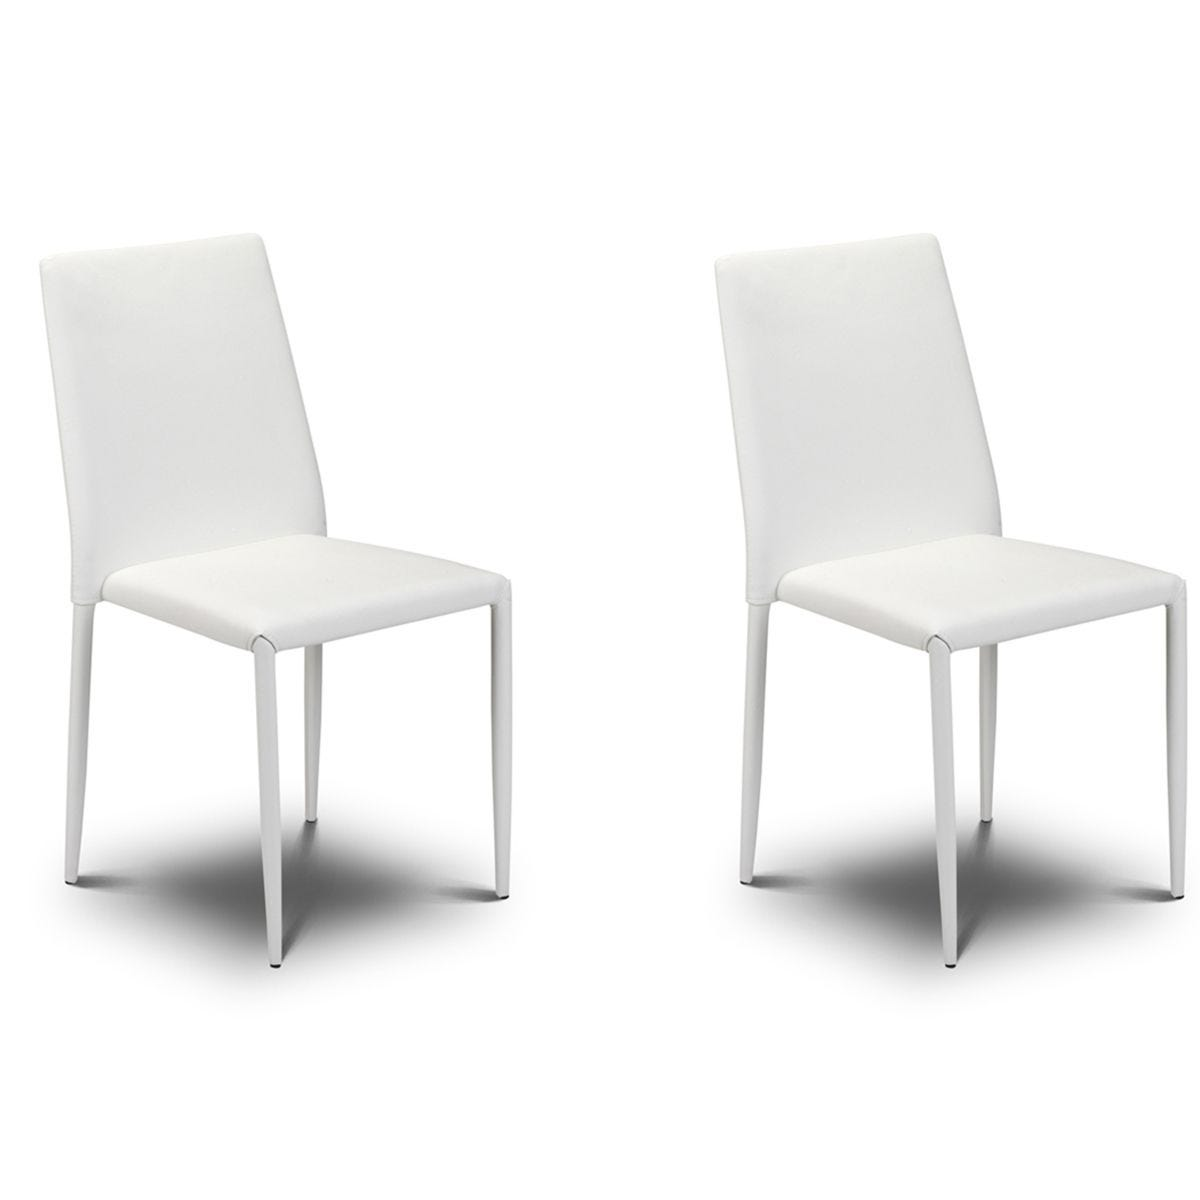 Julian Bowen Jazz Stacking Chair 2 Pack - White Faux Leather